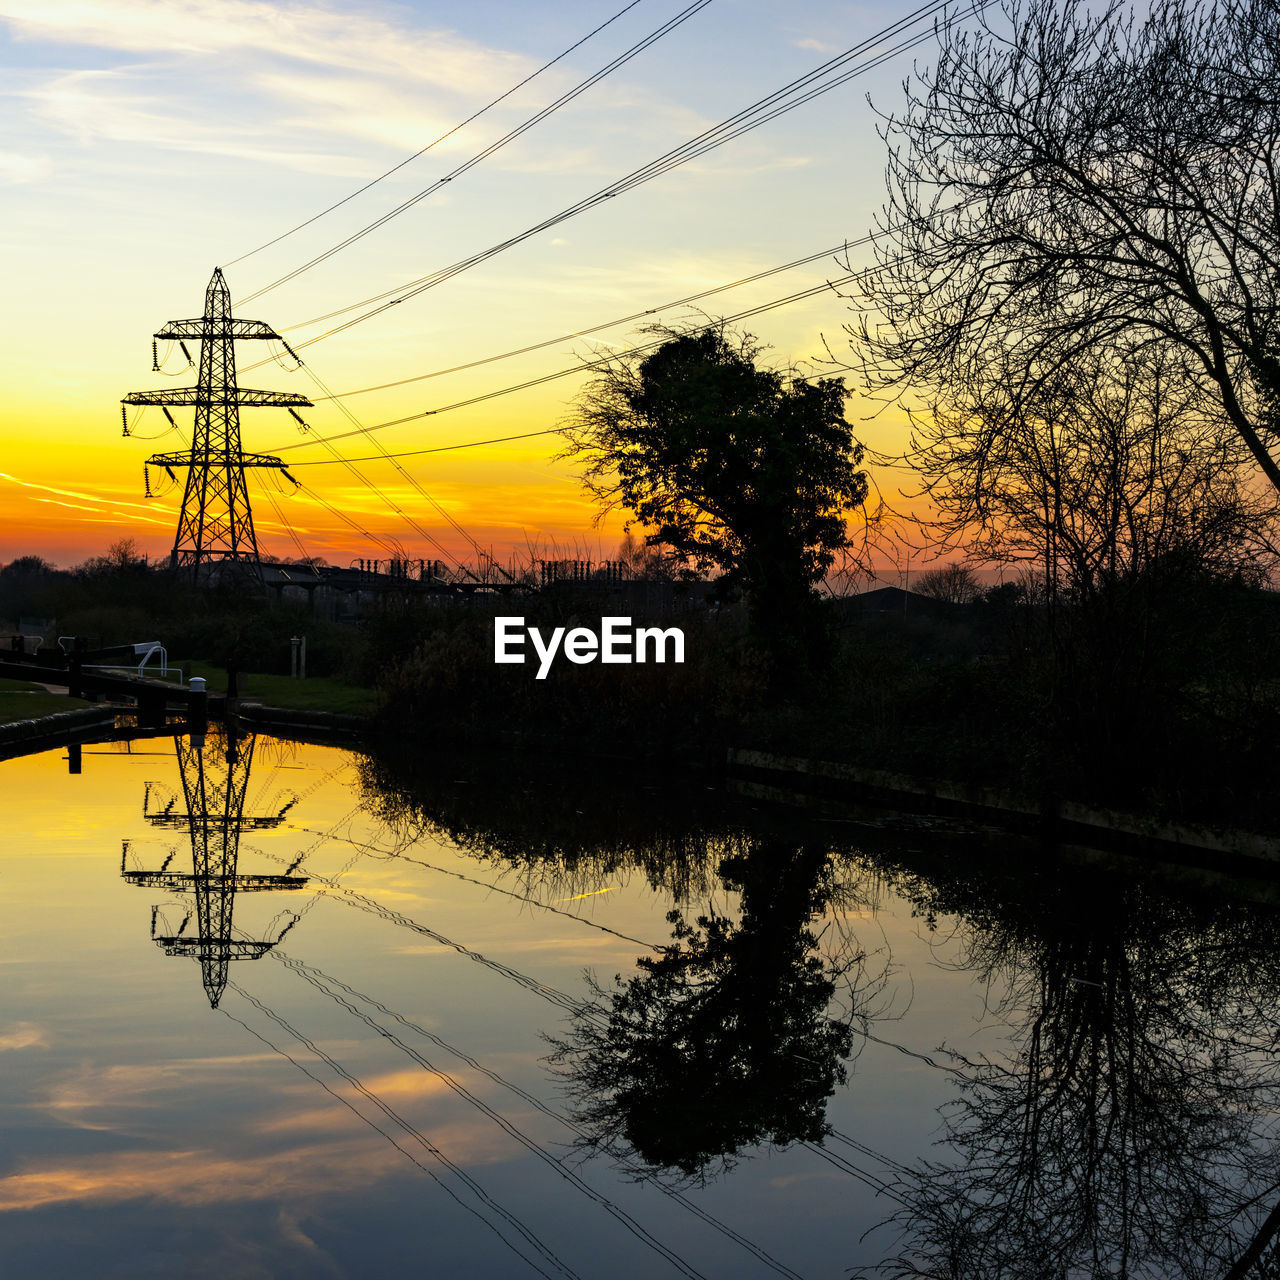 sunset, sky, reflection, tree, water, silhouette, electricity, plant, cable, power line, lake, electricity pylon, technology, scenics - nature, beauty in nature, orange color, tranquility, nature, tranquil scene, no people, power supply, outdoors